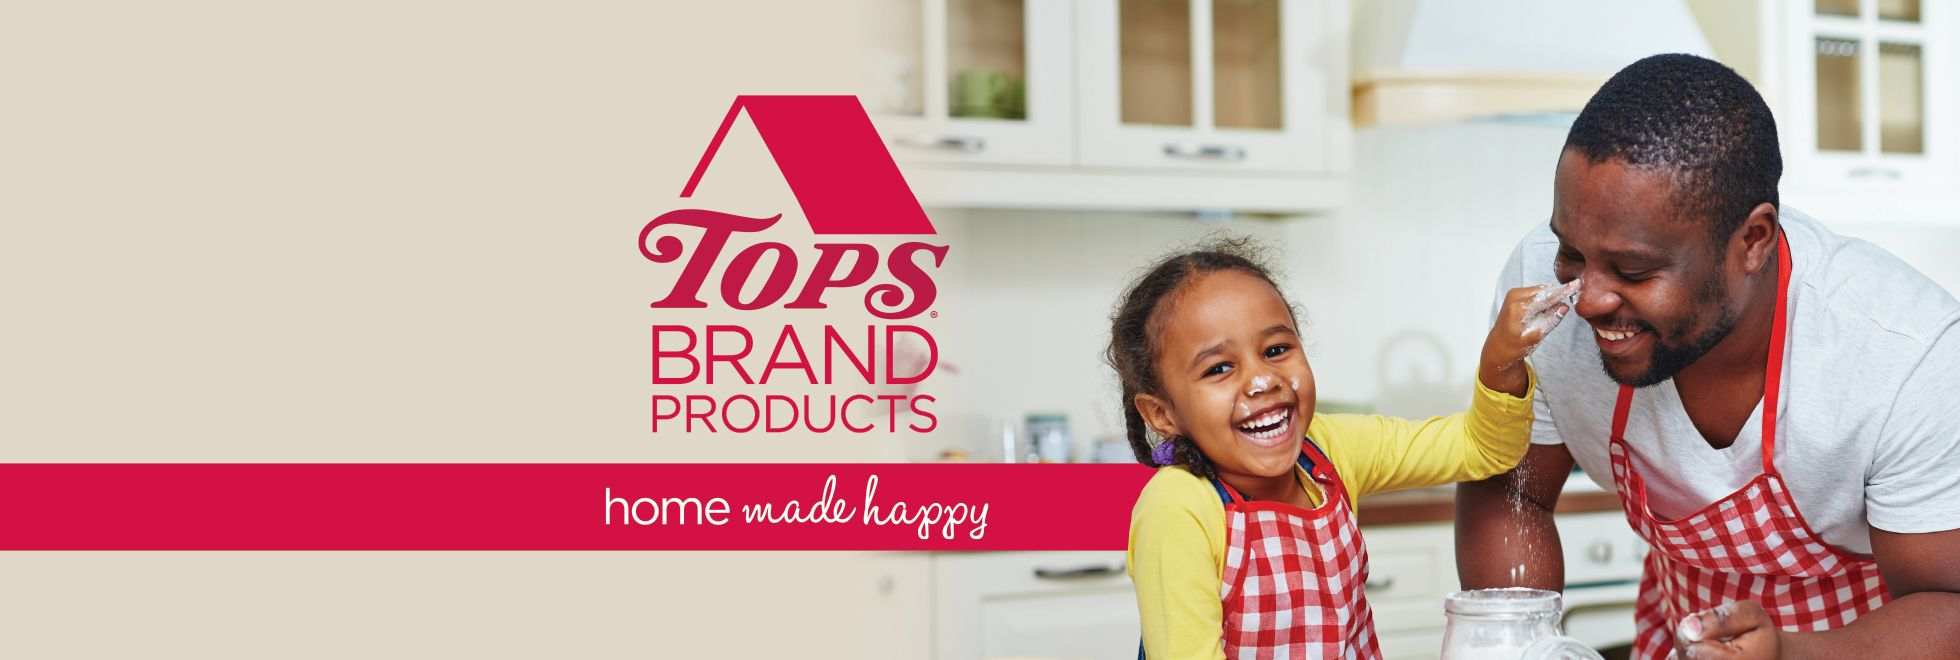 TOPS Brand Products